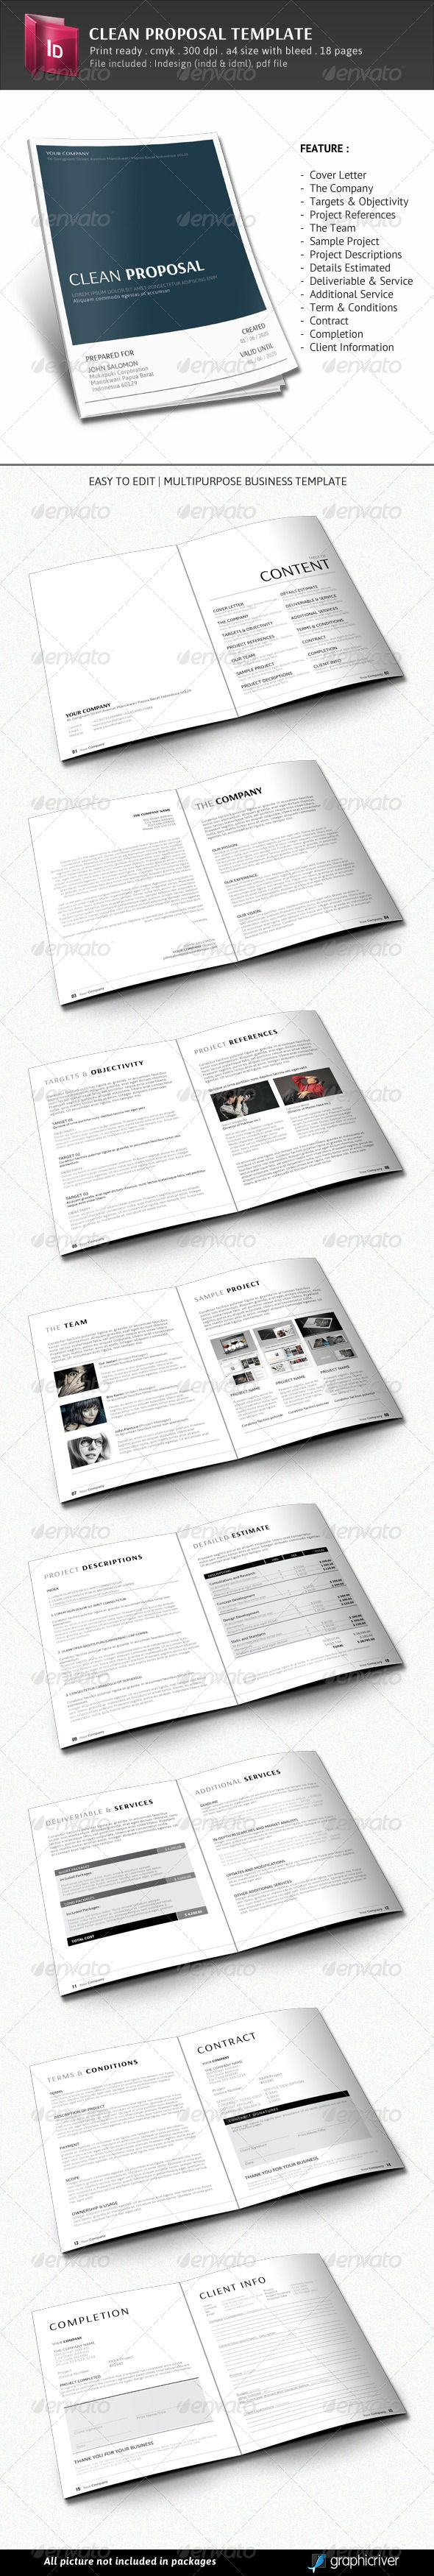 Commercial Proposal Format Impressive 226 Best Proposal & Invoice Templates Images On Pinterest